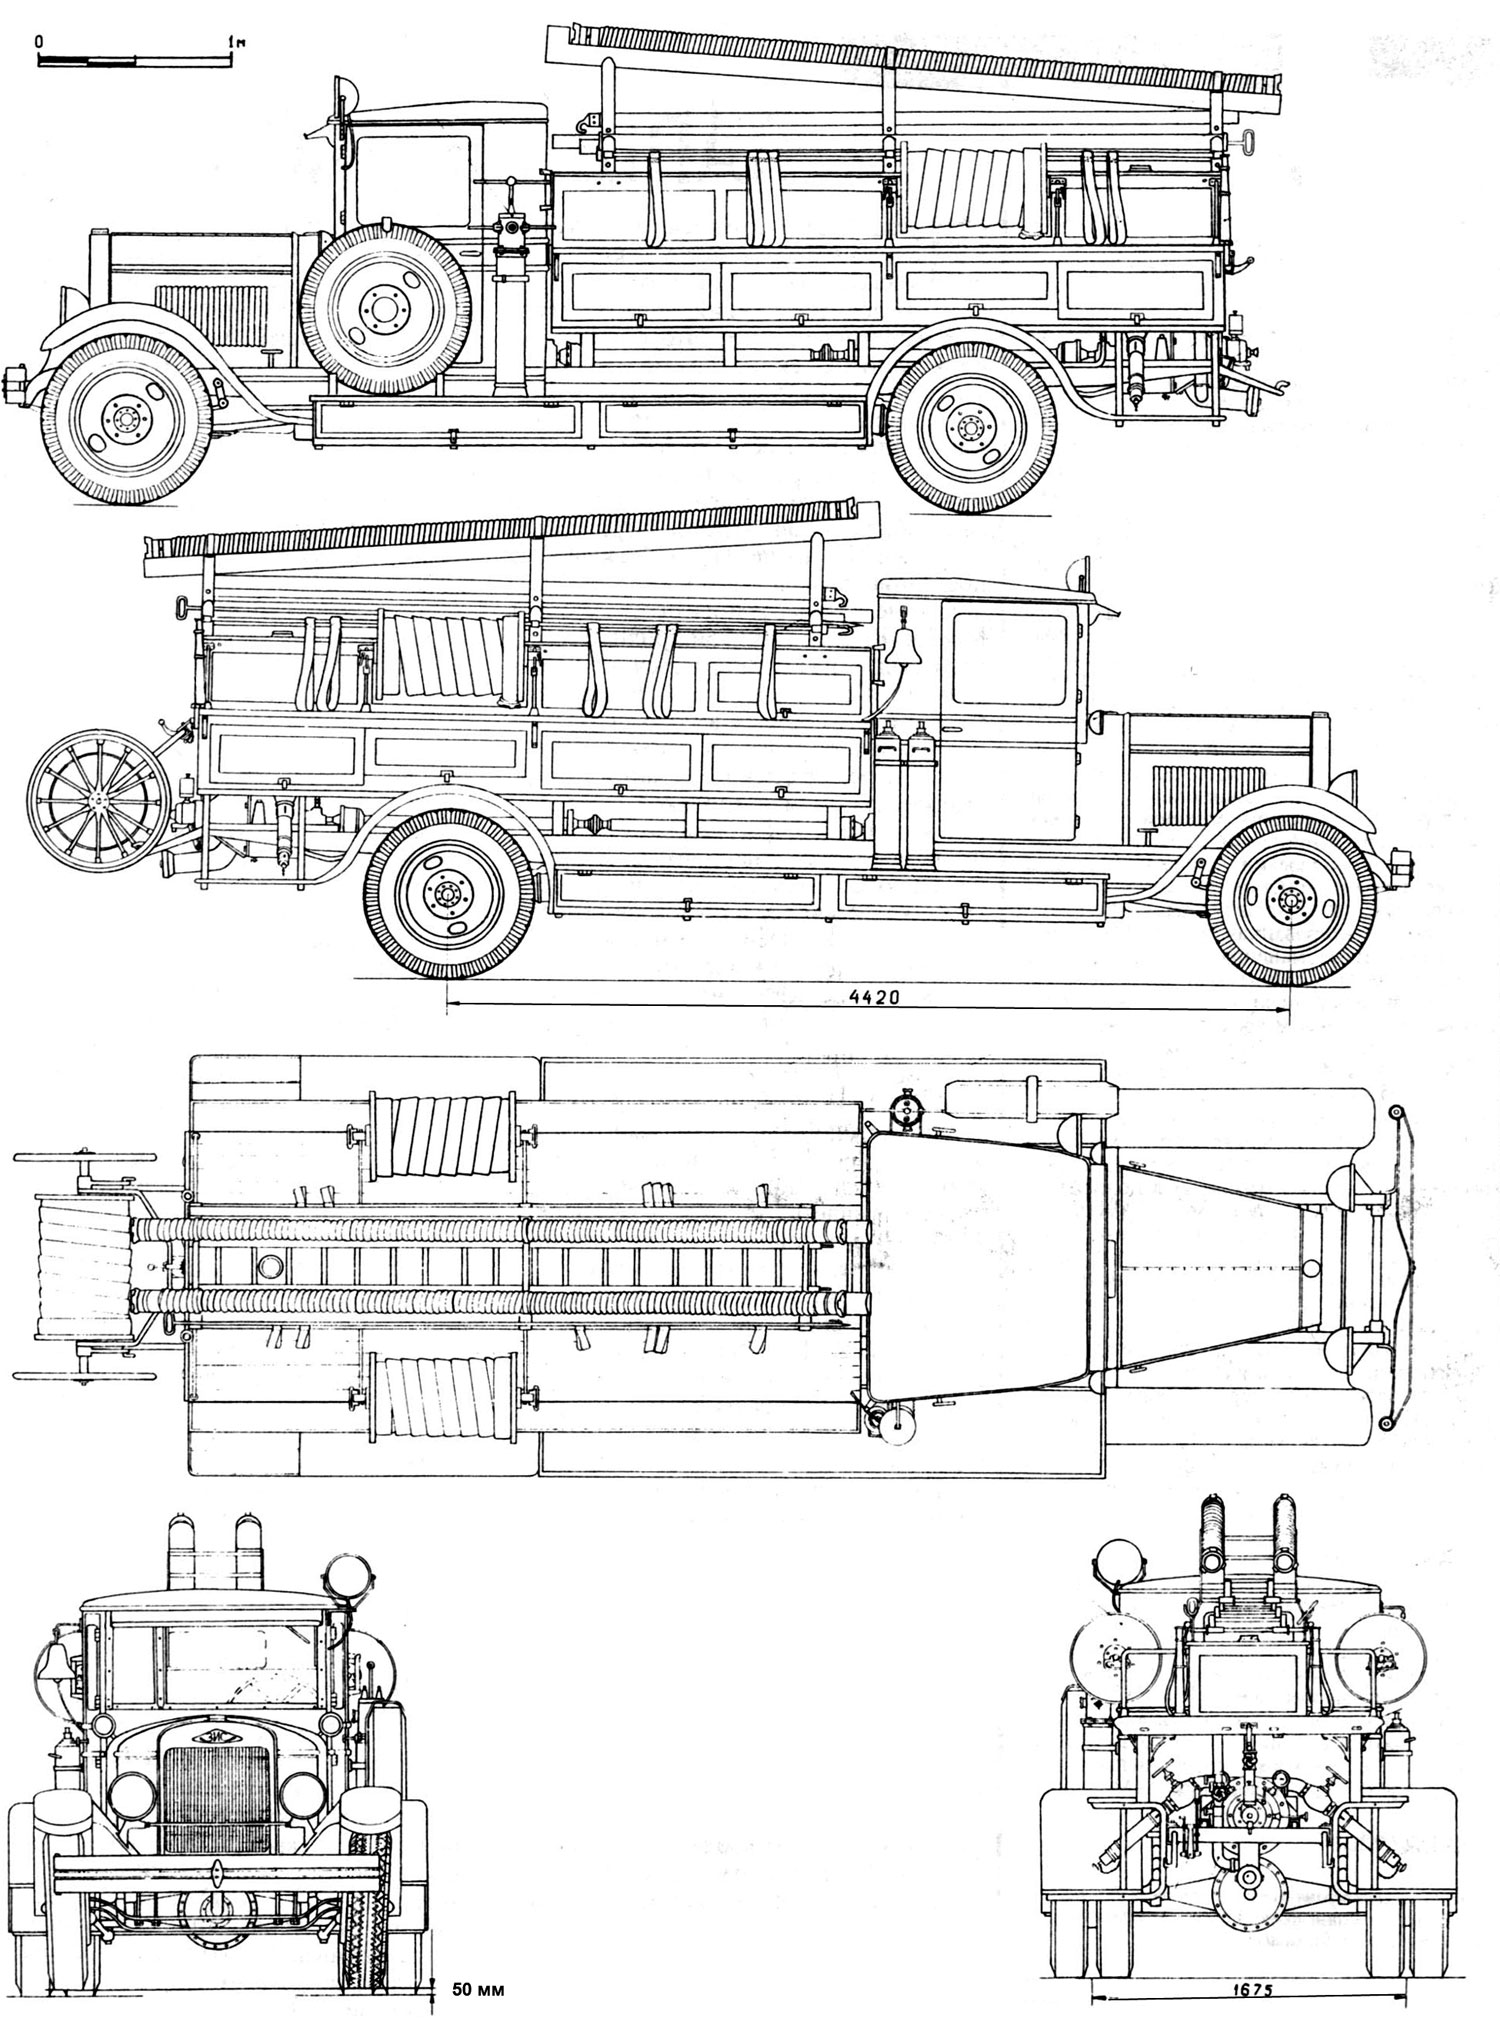 Zis 11 Fire Truck Blueprint